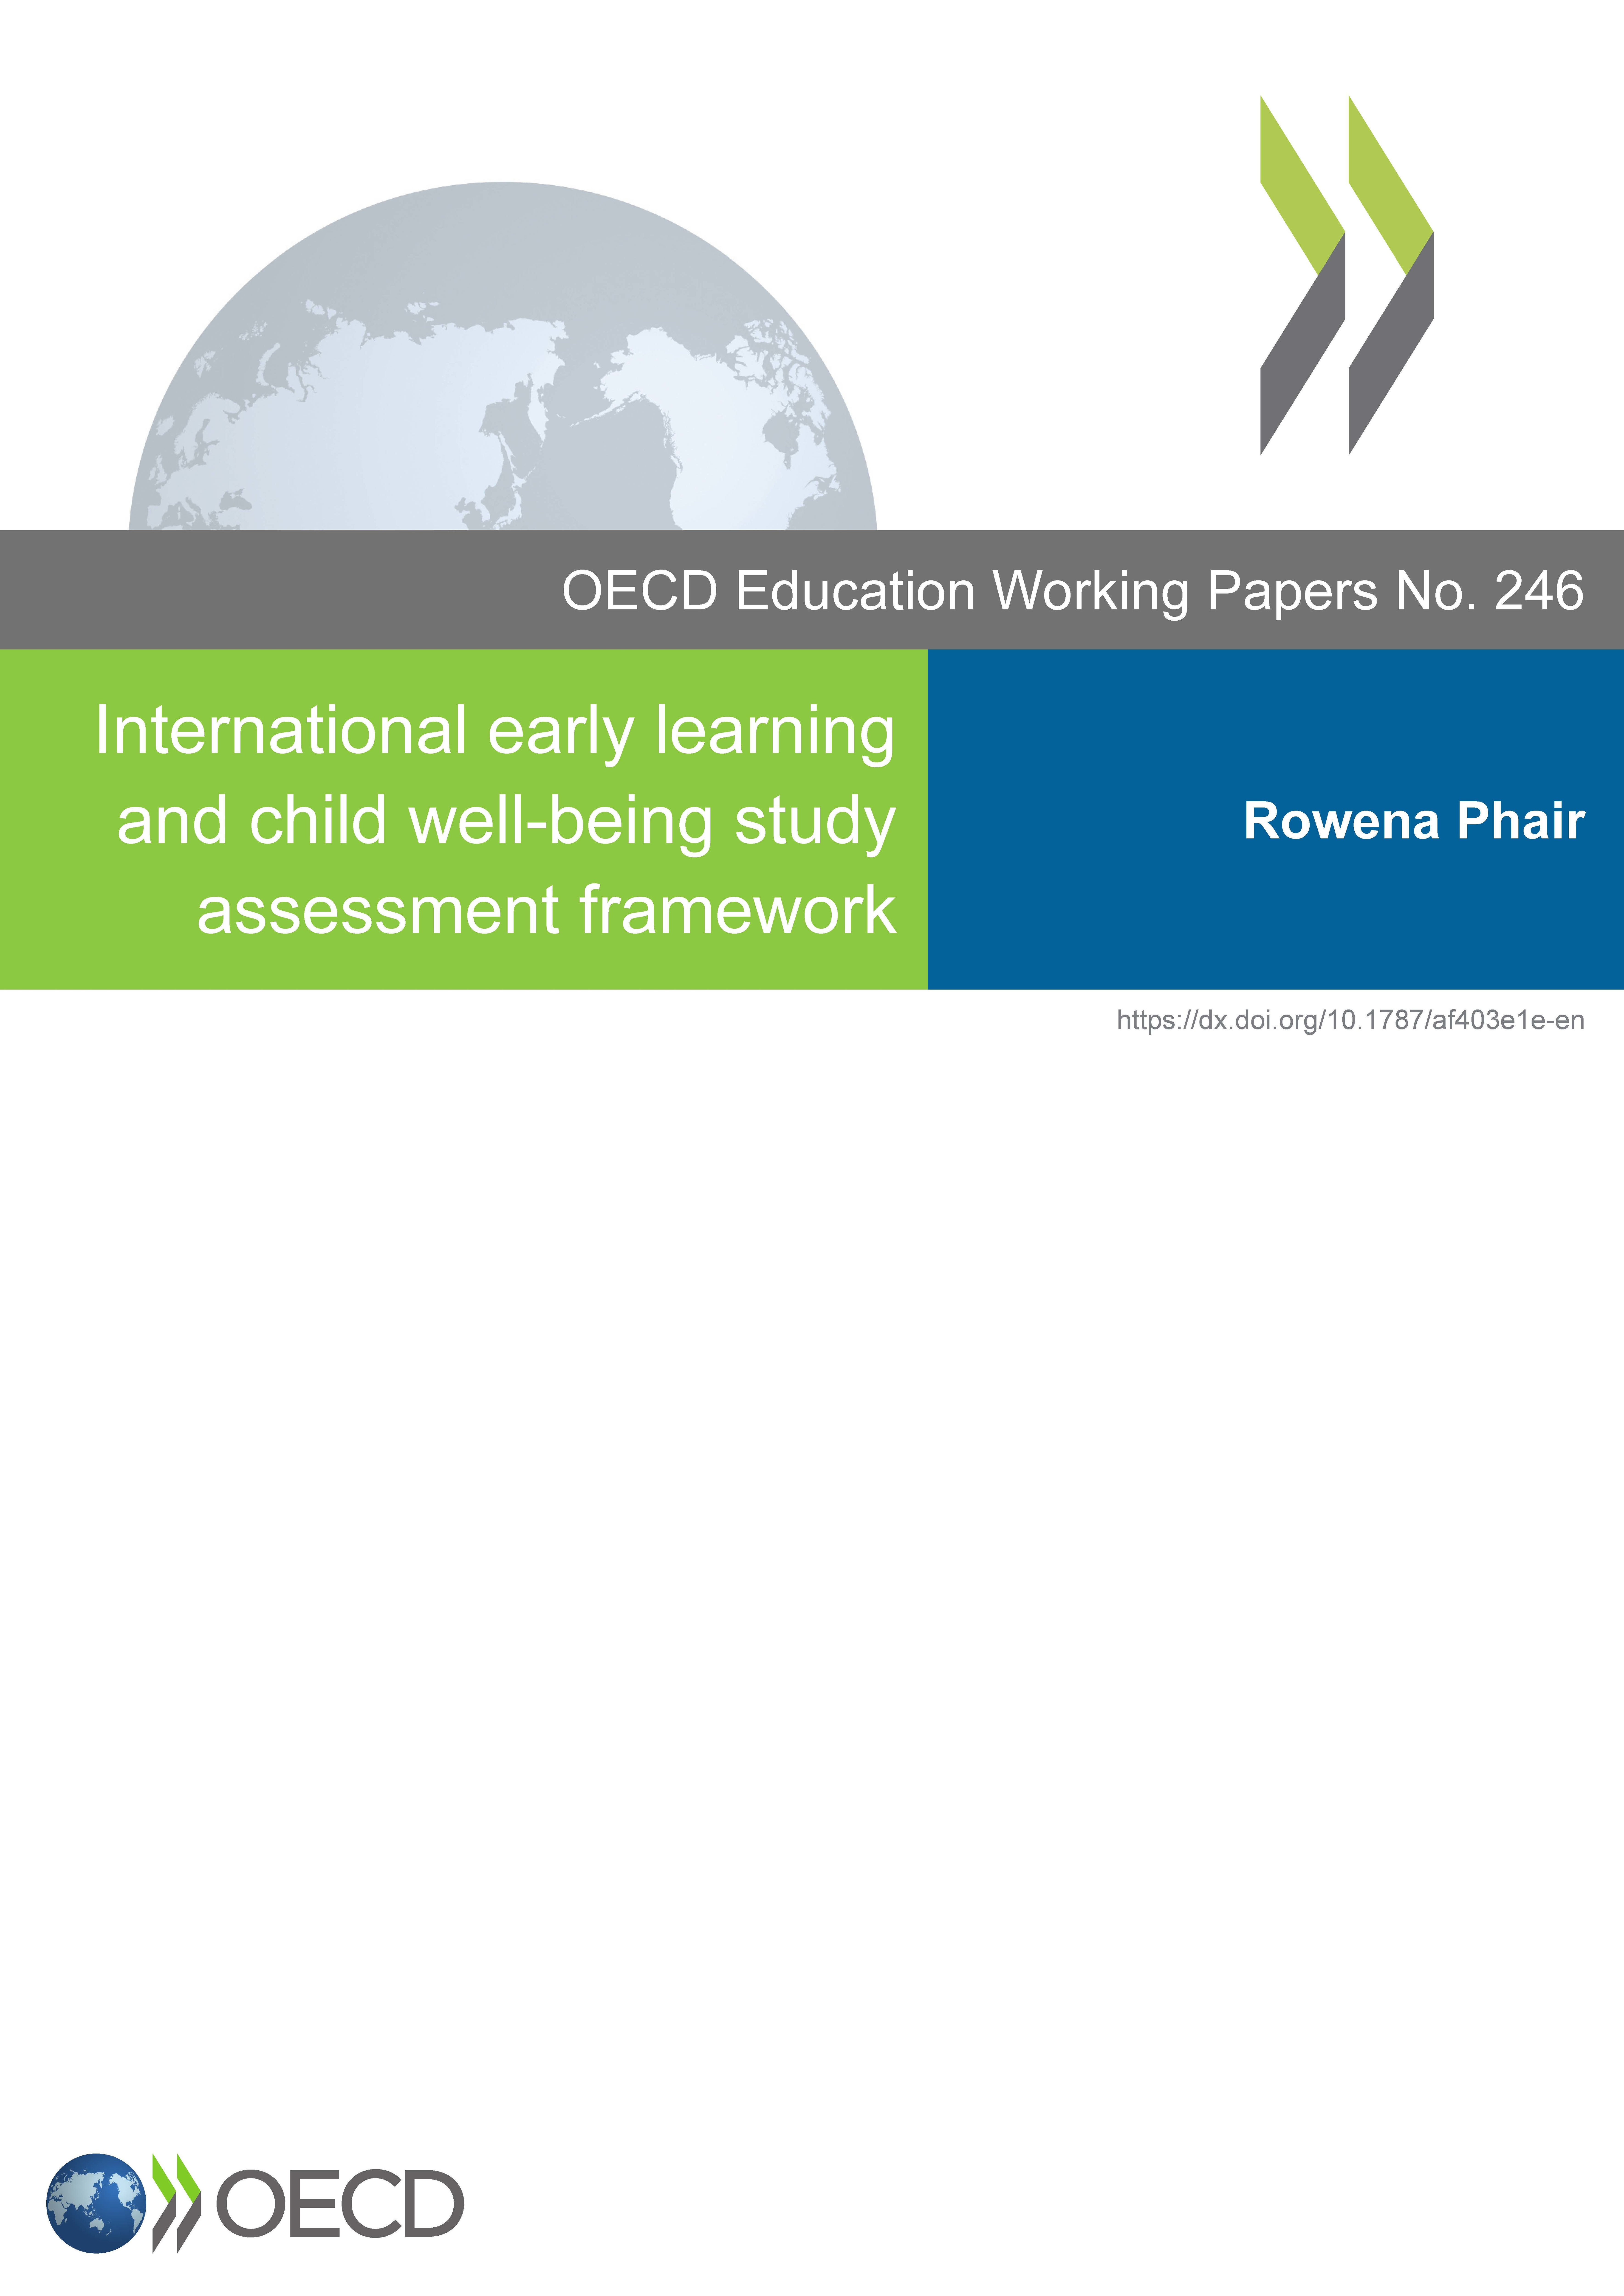 IELS - International early learning and child well-being study assessment framework (2021) - OECD